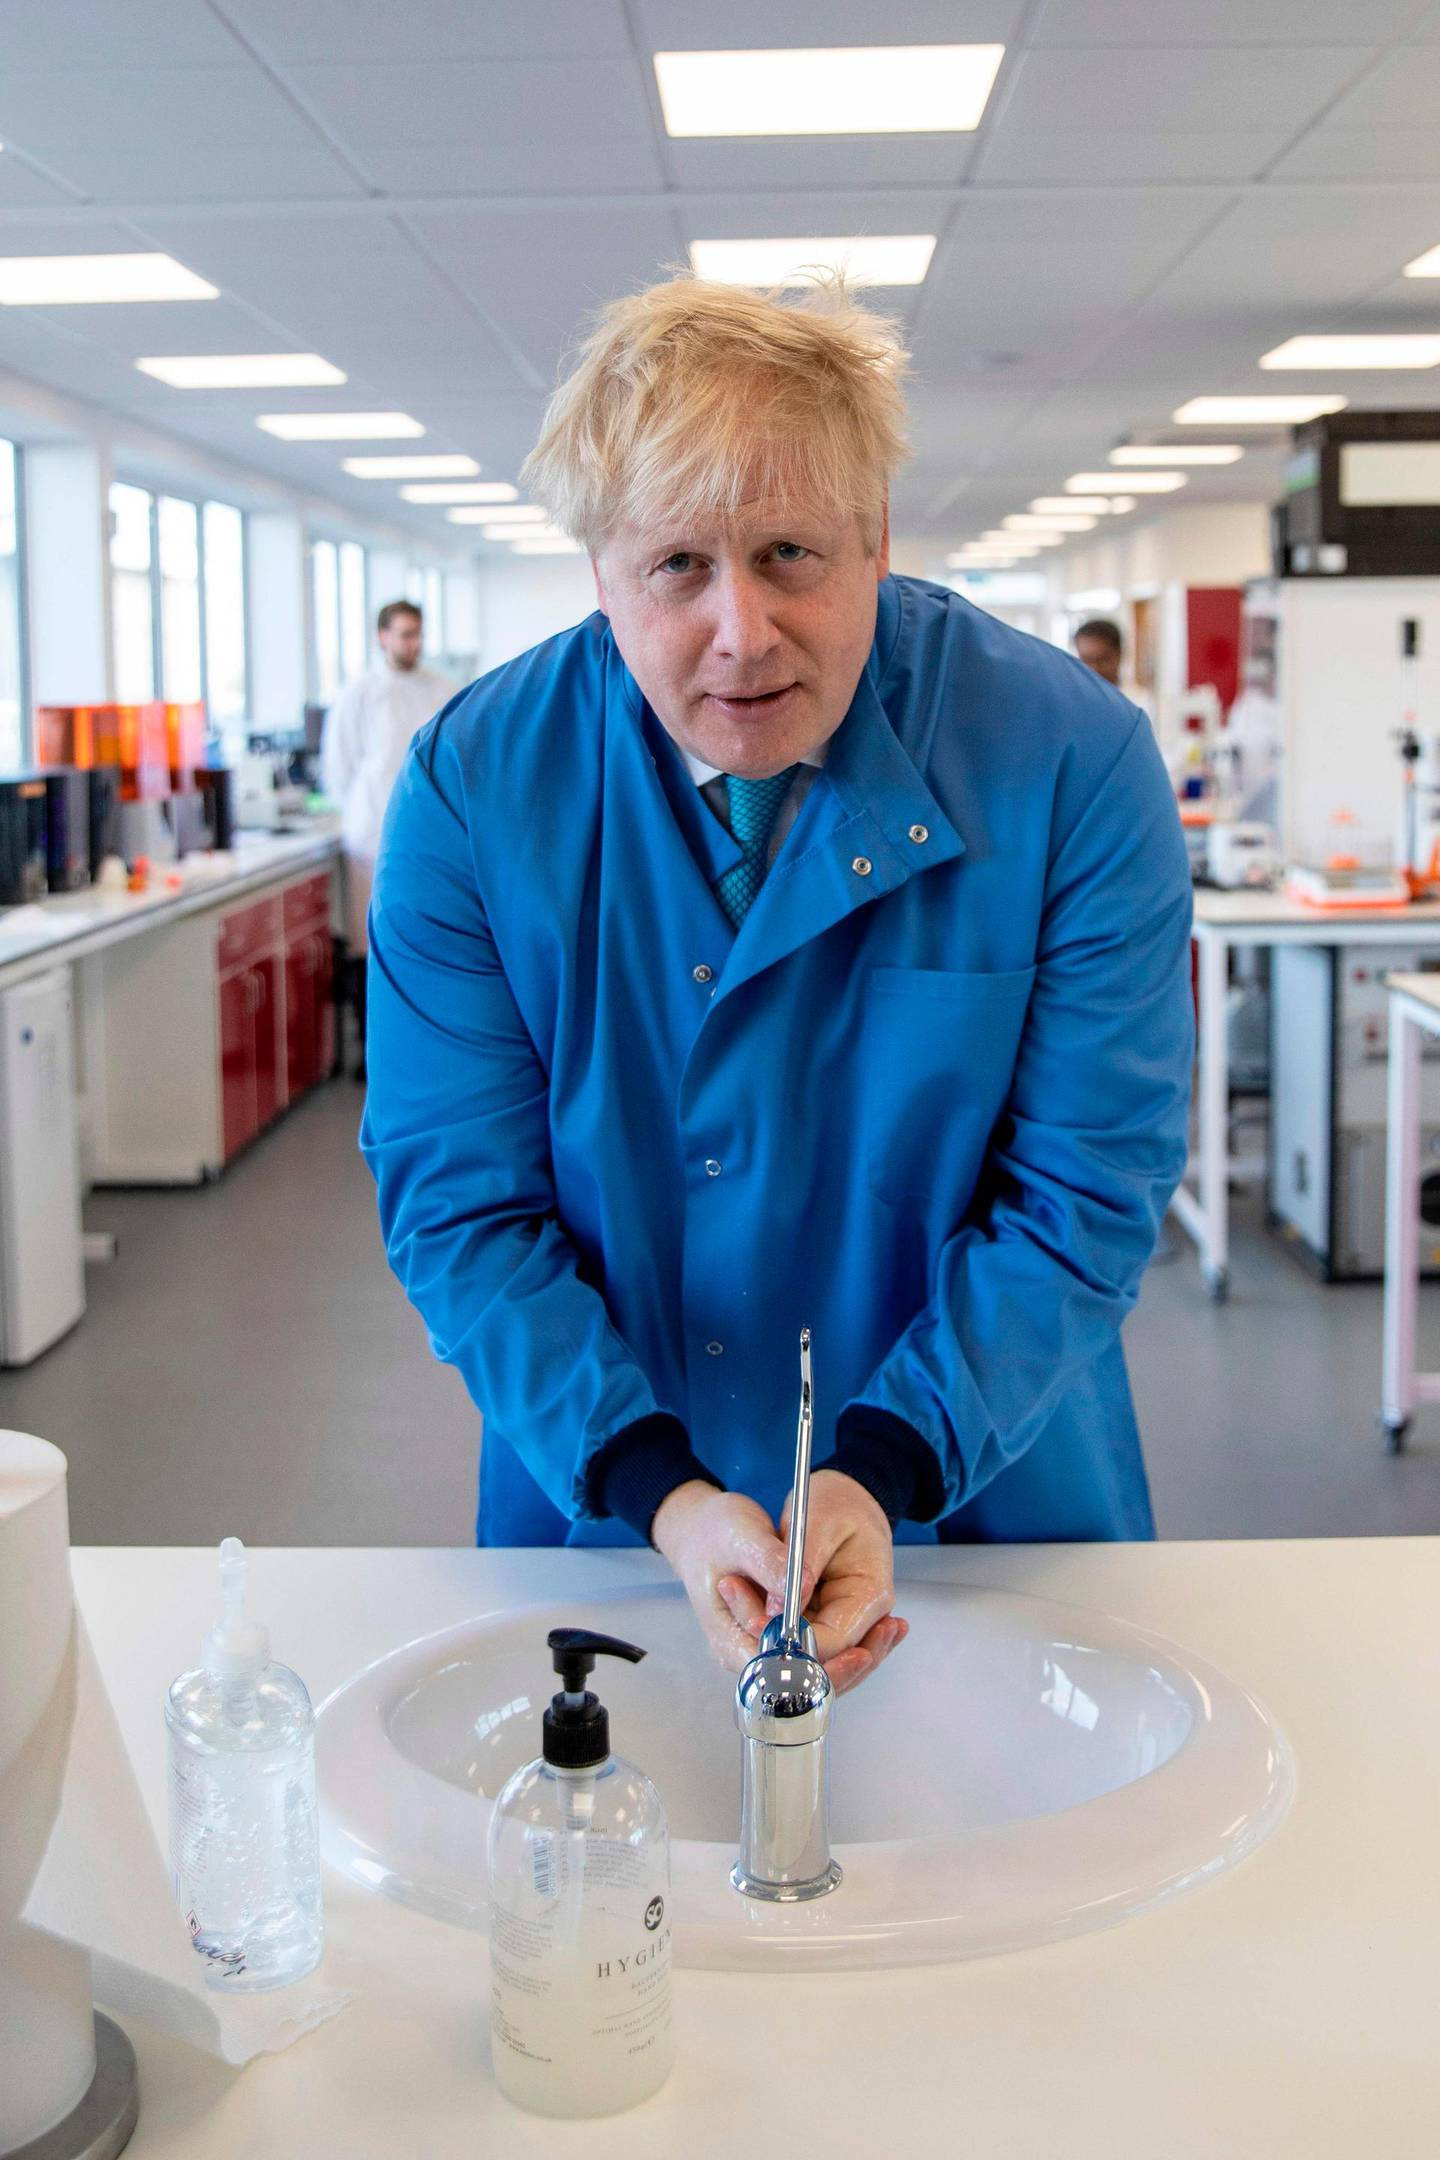 Britain's Prime Minister Boris Johnson washes his hands during a visit to the Mologic Laboratory in the Bedford technology Park, north of London on March 6, 2020. The Prime Minister pledged a further £46 million for research into a coronavirus vaccine and rapid diagnostic tests during the visit to the Laboratory, where British scientists are working on ways to diagnose coronavirus.  / AFP / POOL / Jack Hill